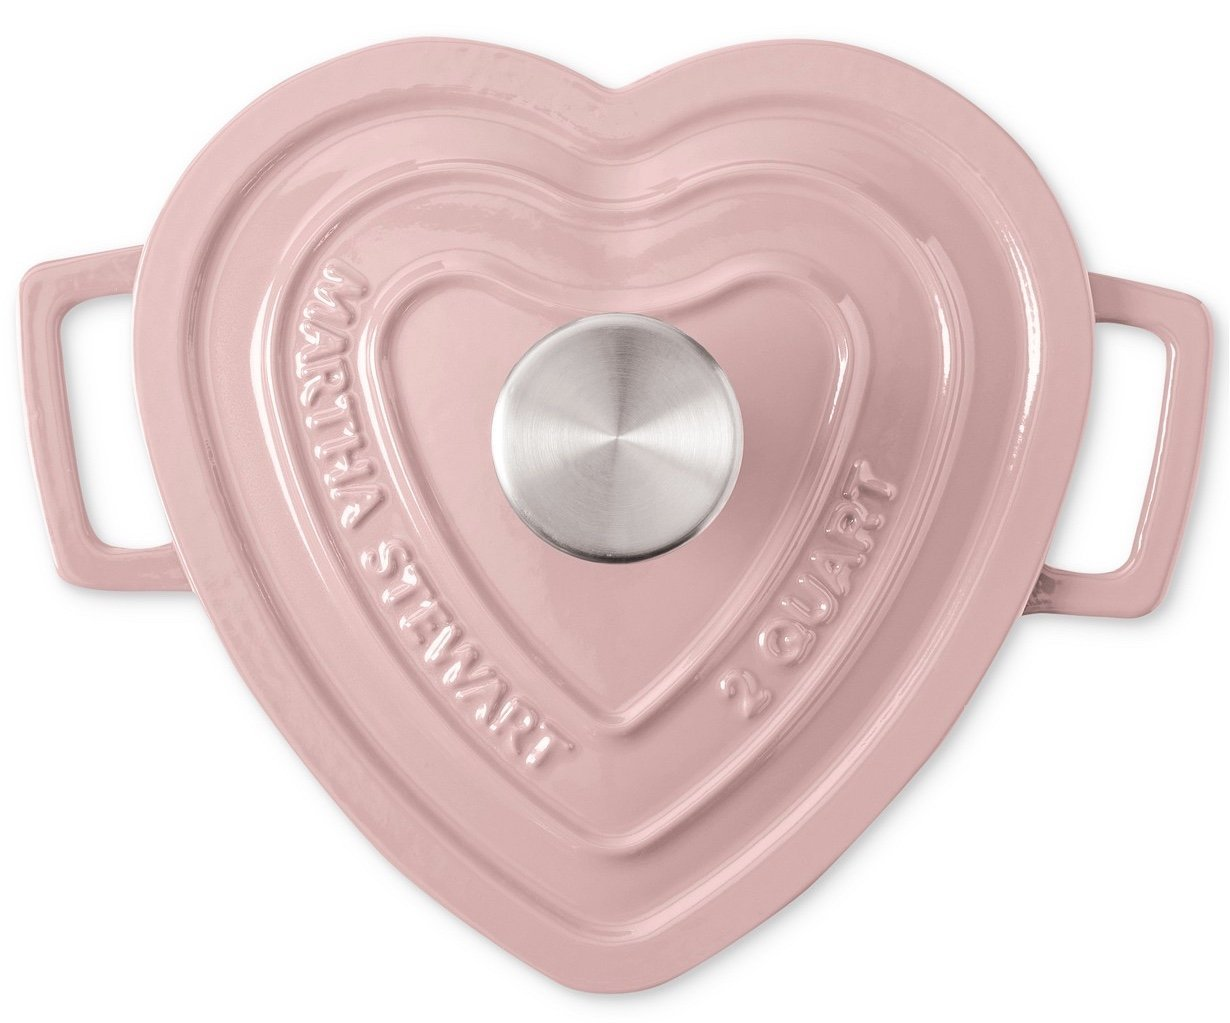 Martha Stewart Collection Collectors Enameled Cast Iron Heart-Shaped Casserole 2 QT Pink